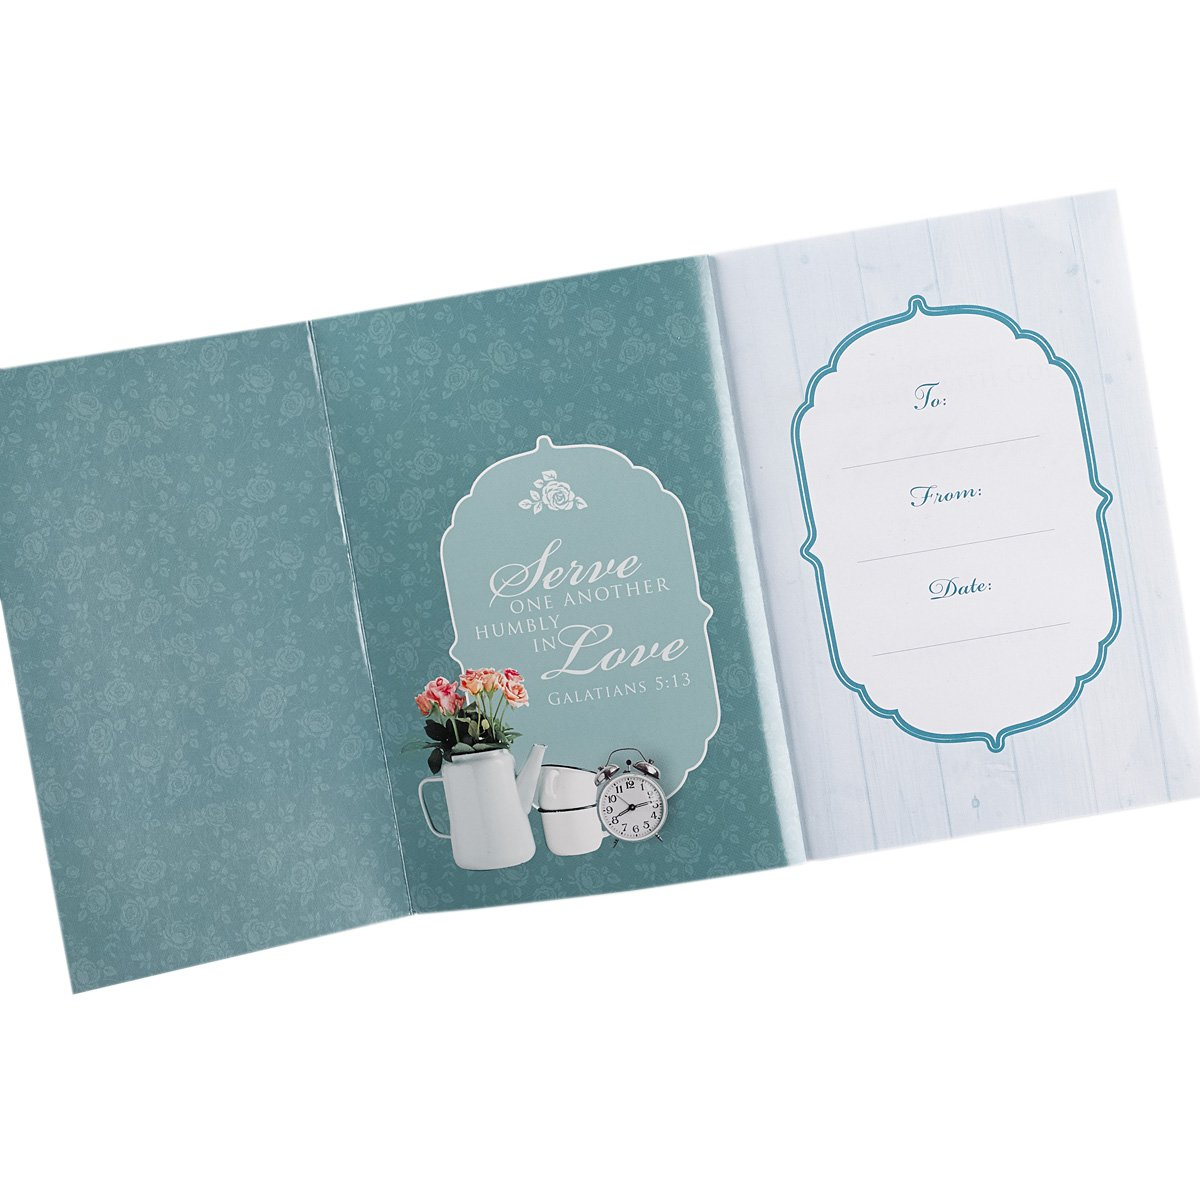 100 devotions for a baby shower devotions for a baby shower